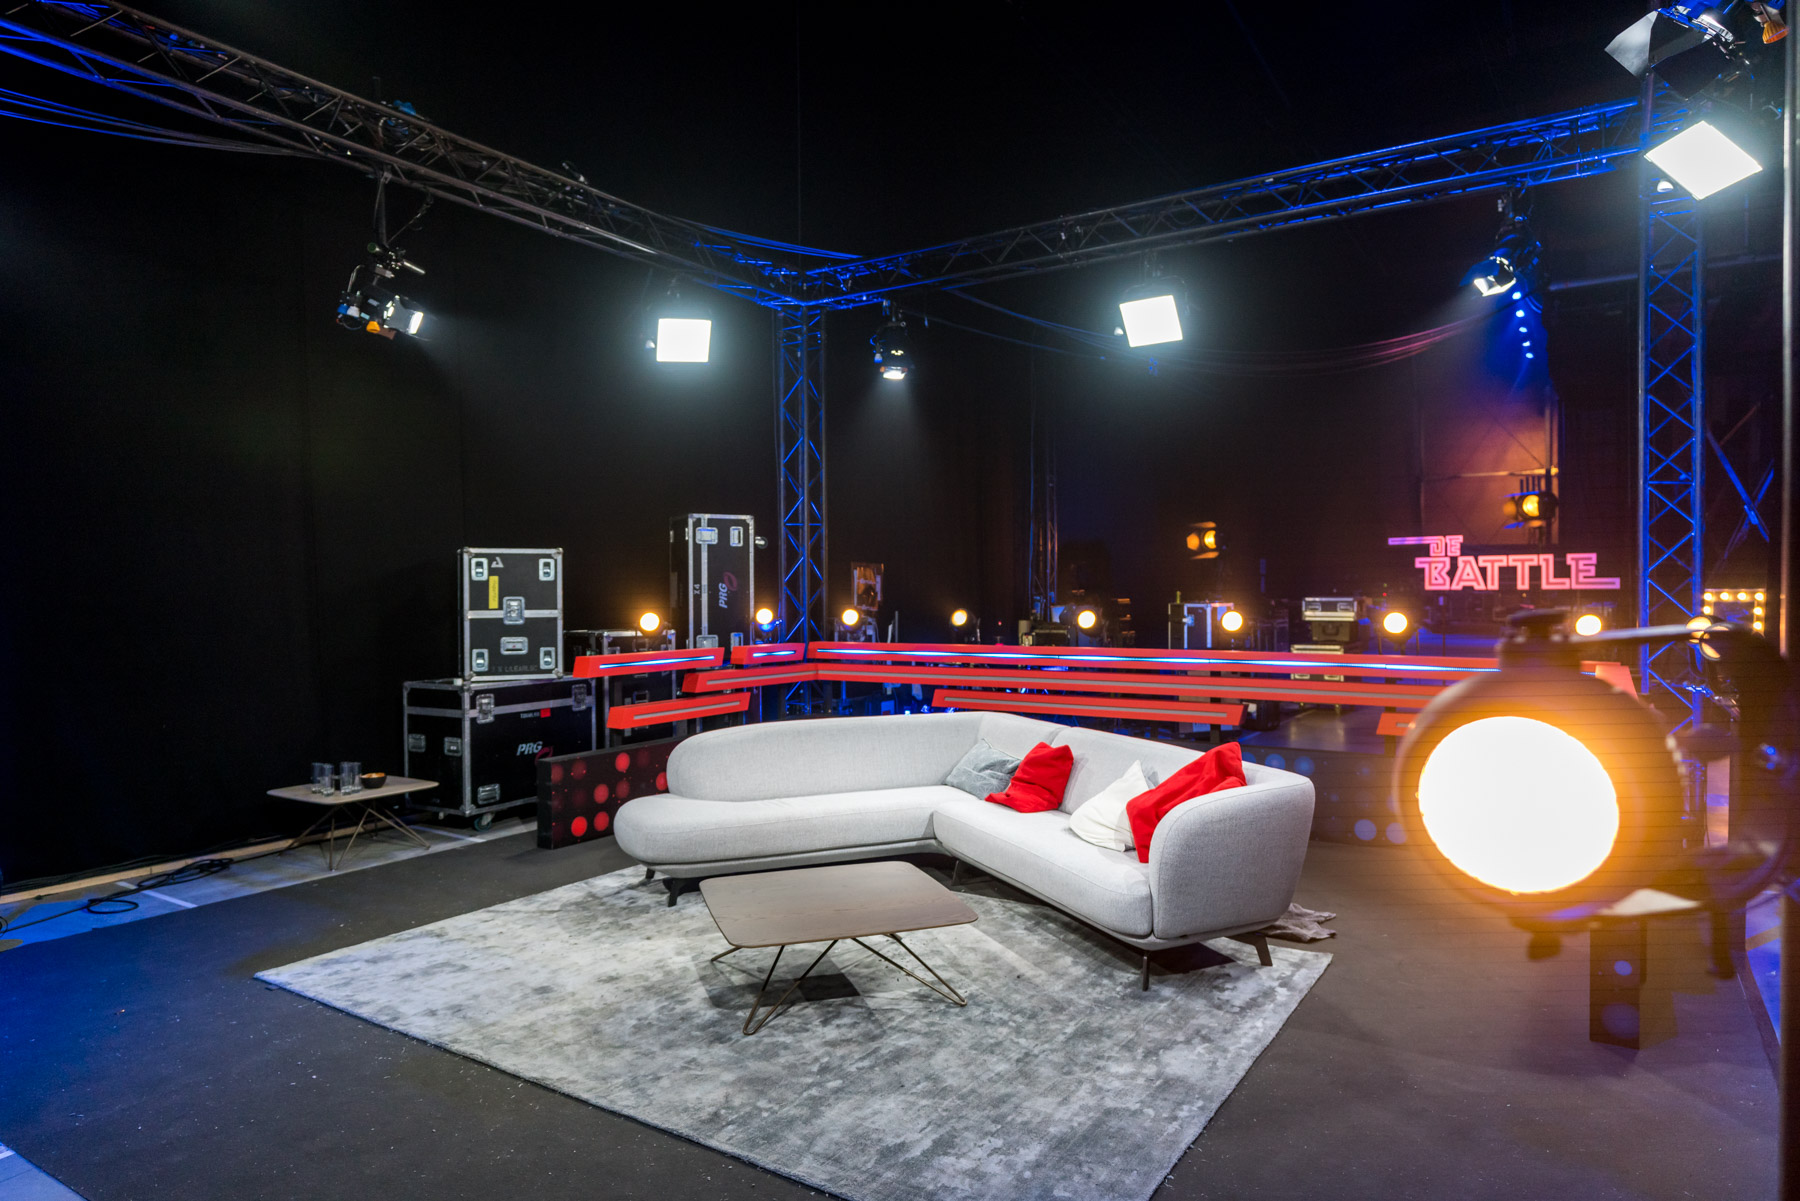 TV-decor - De battle (19)